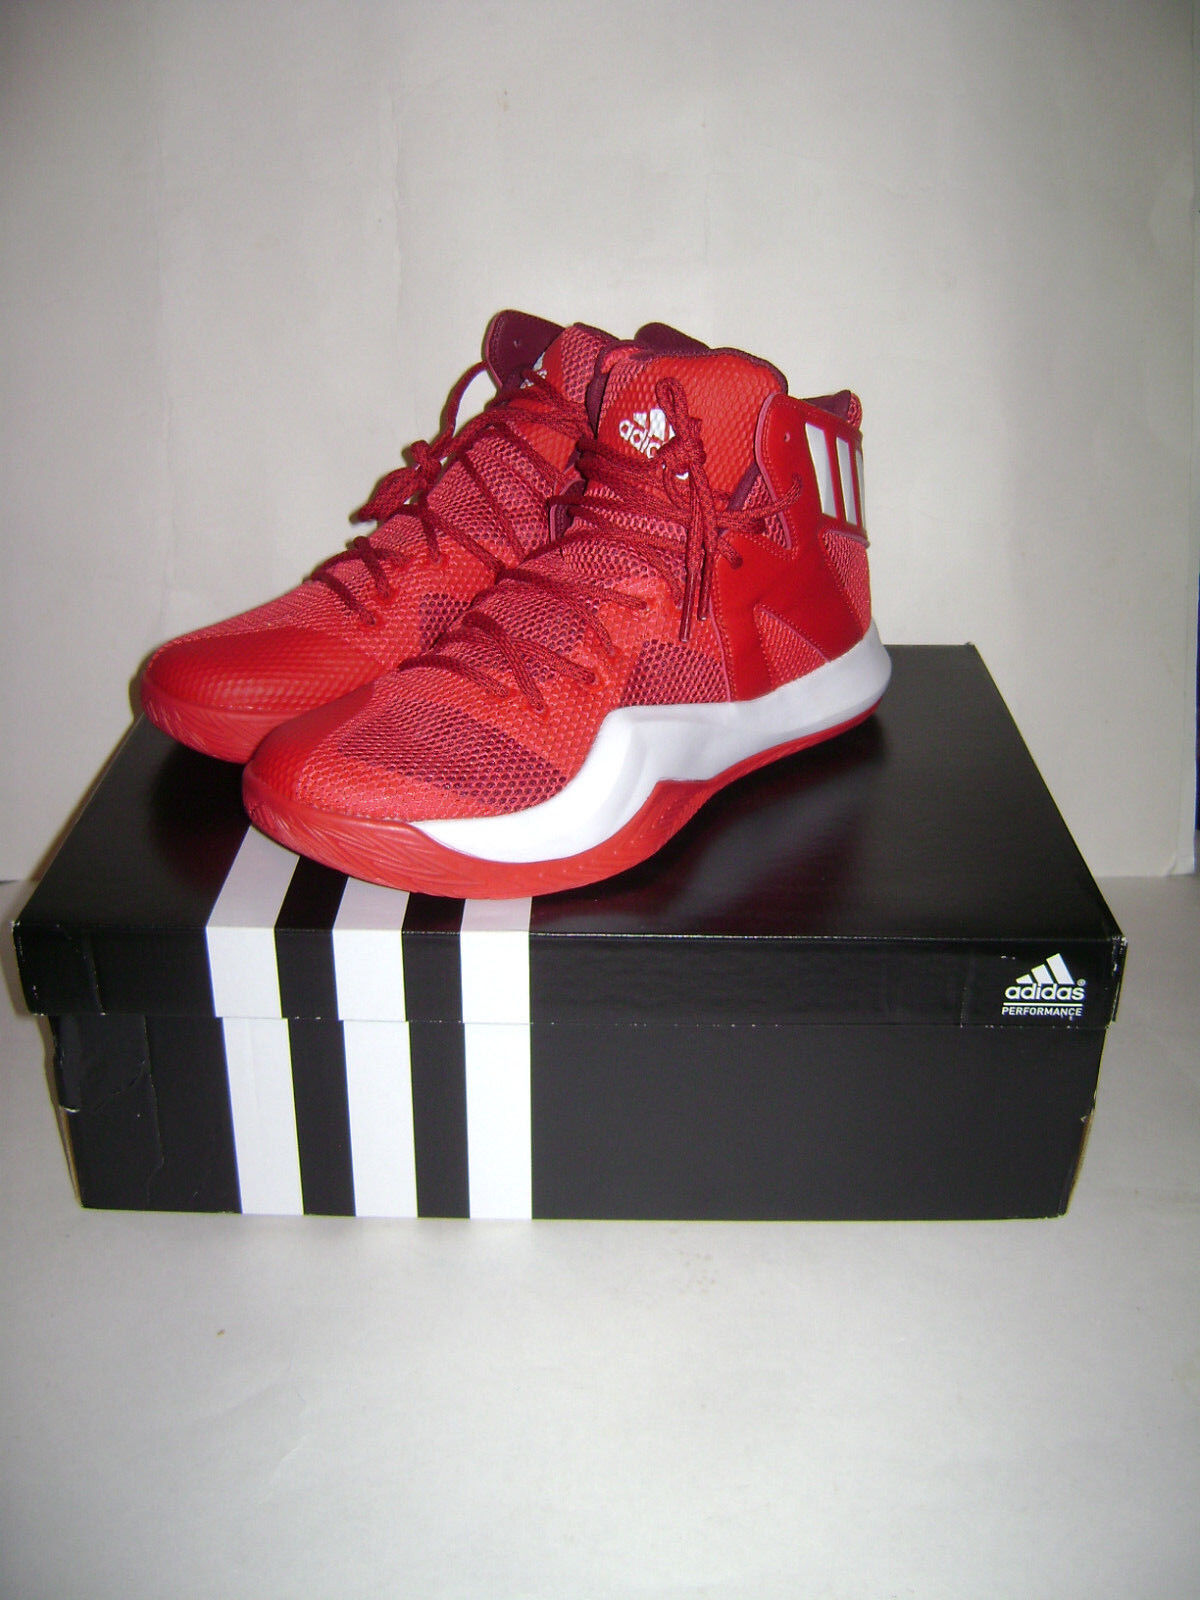 NIB ADIDAS Crazy Bounce Men Basketball shoes Sneakers size 13 13 13 Red White B72768 6b5514